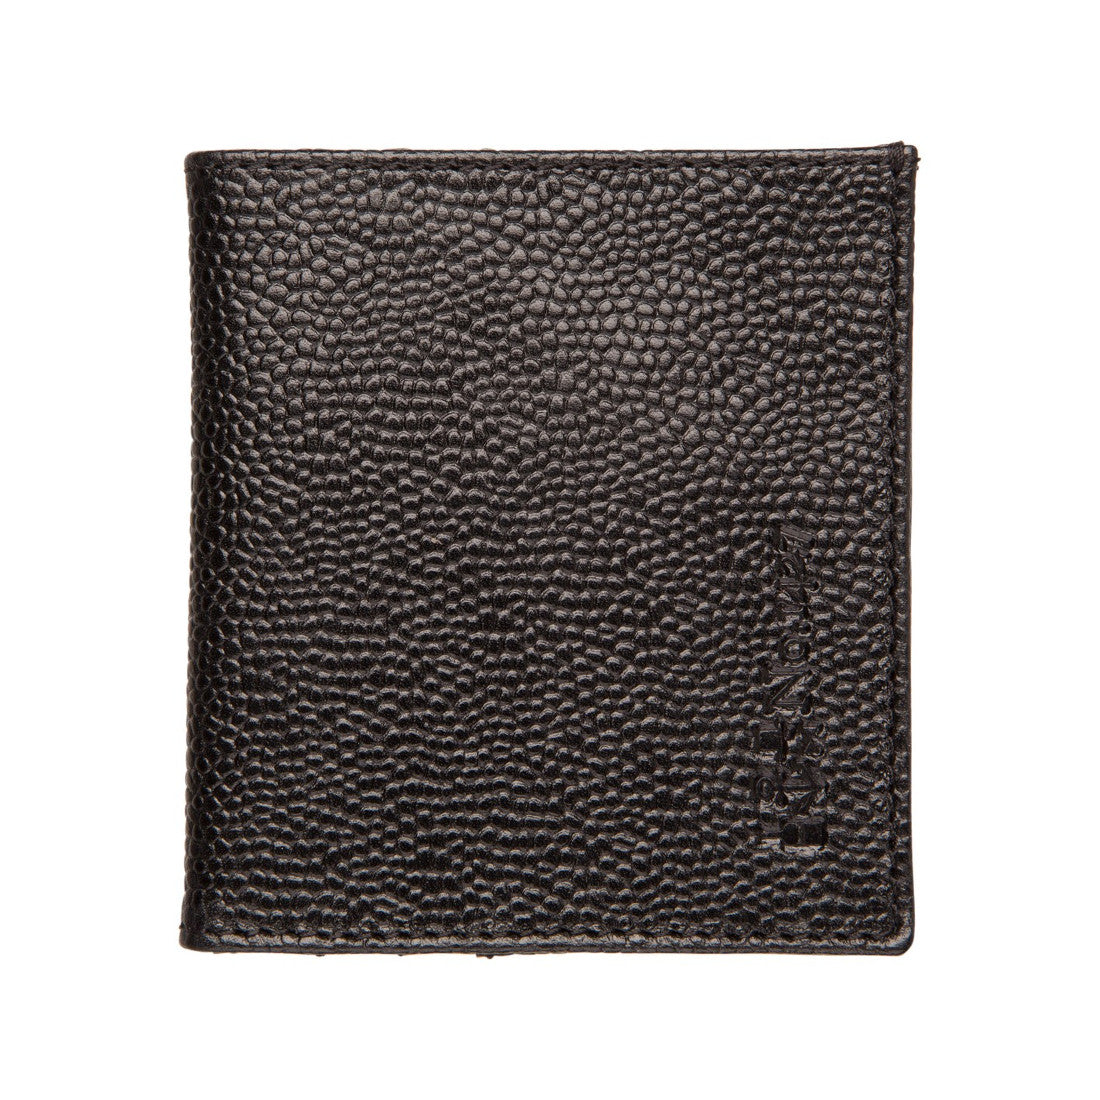 Small Wallet - Panther